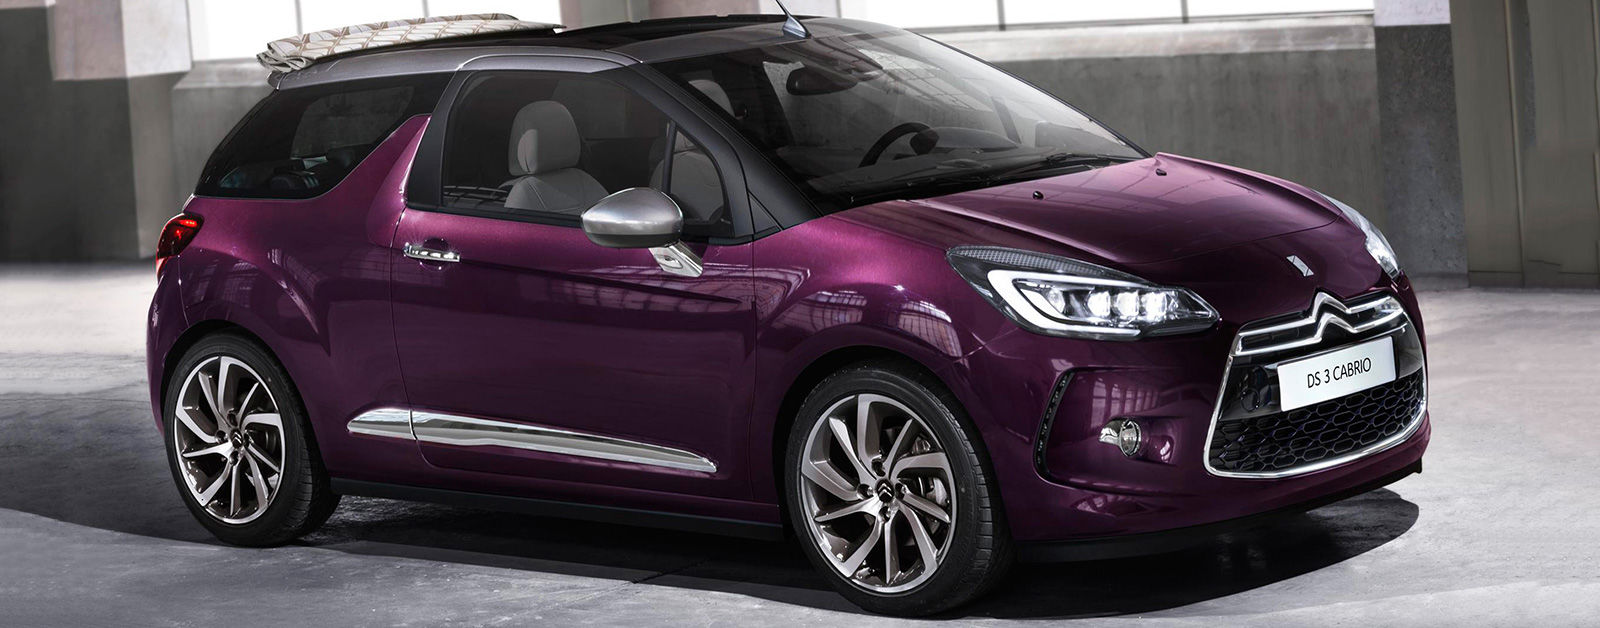 Colour a car - The Ds 3 Is Already A Funky Looking Car But This Optional Colour Really Makes It Stick Out It S Rich And Deep And Changes According To How The Light Is